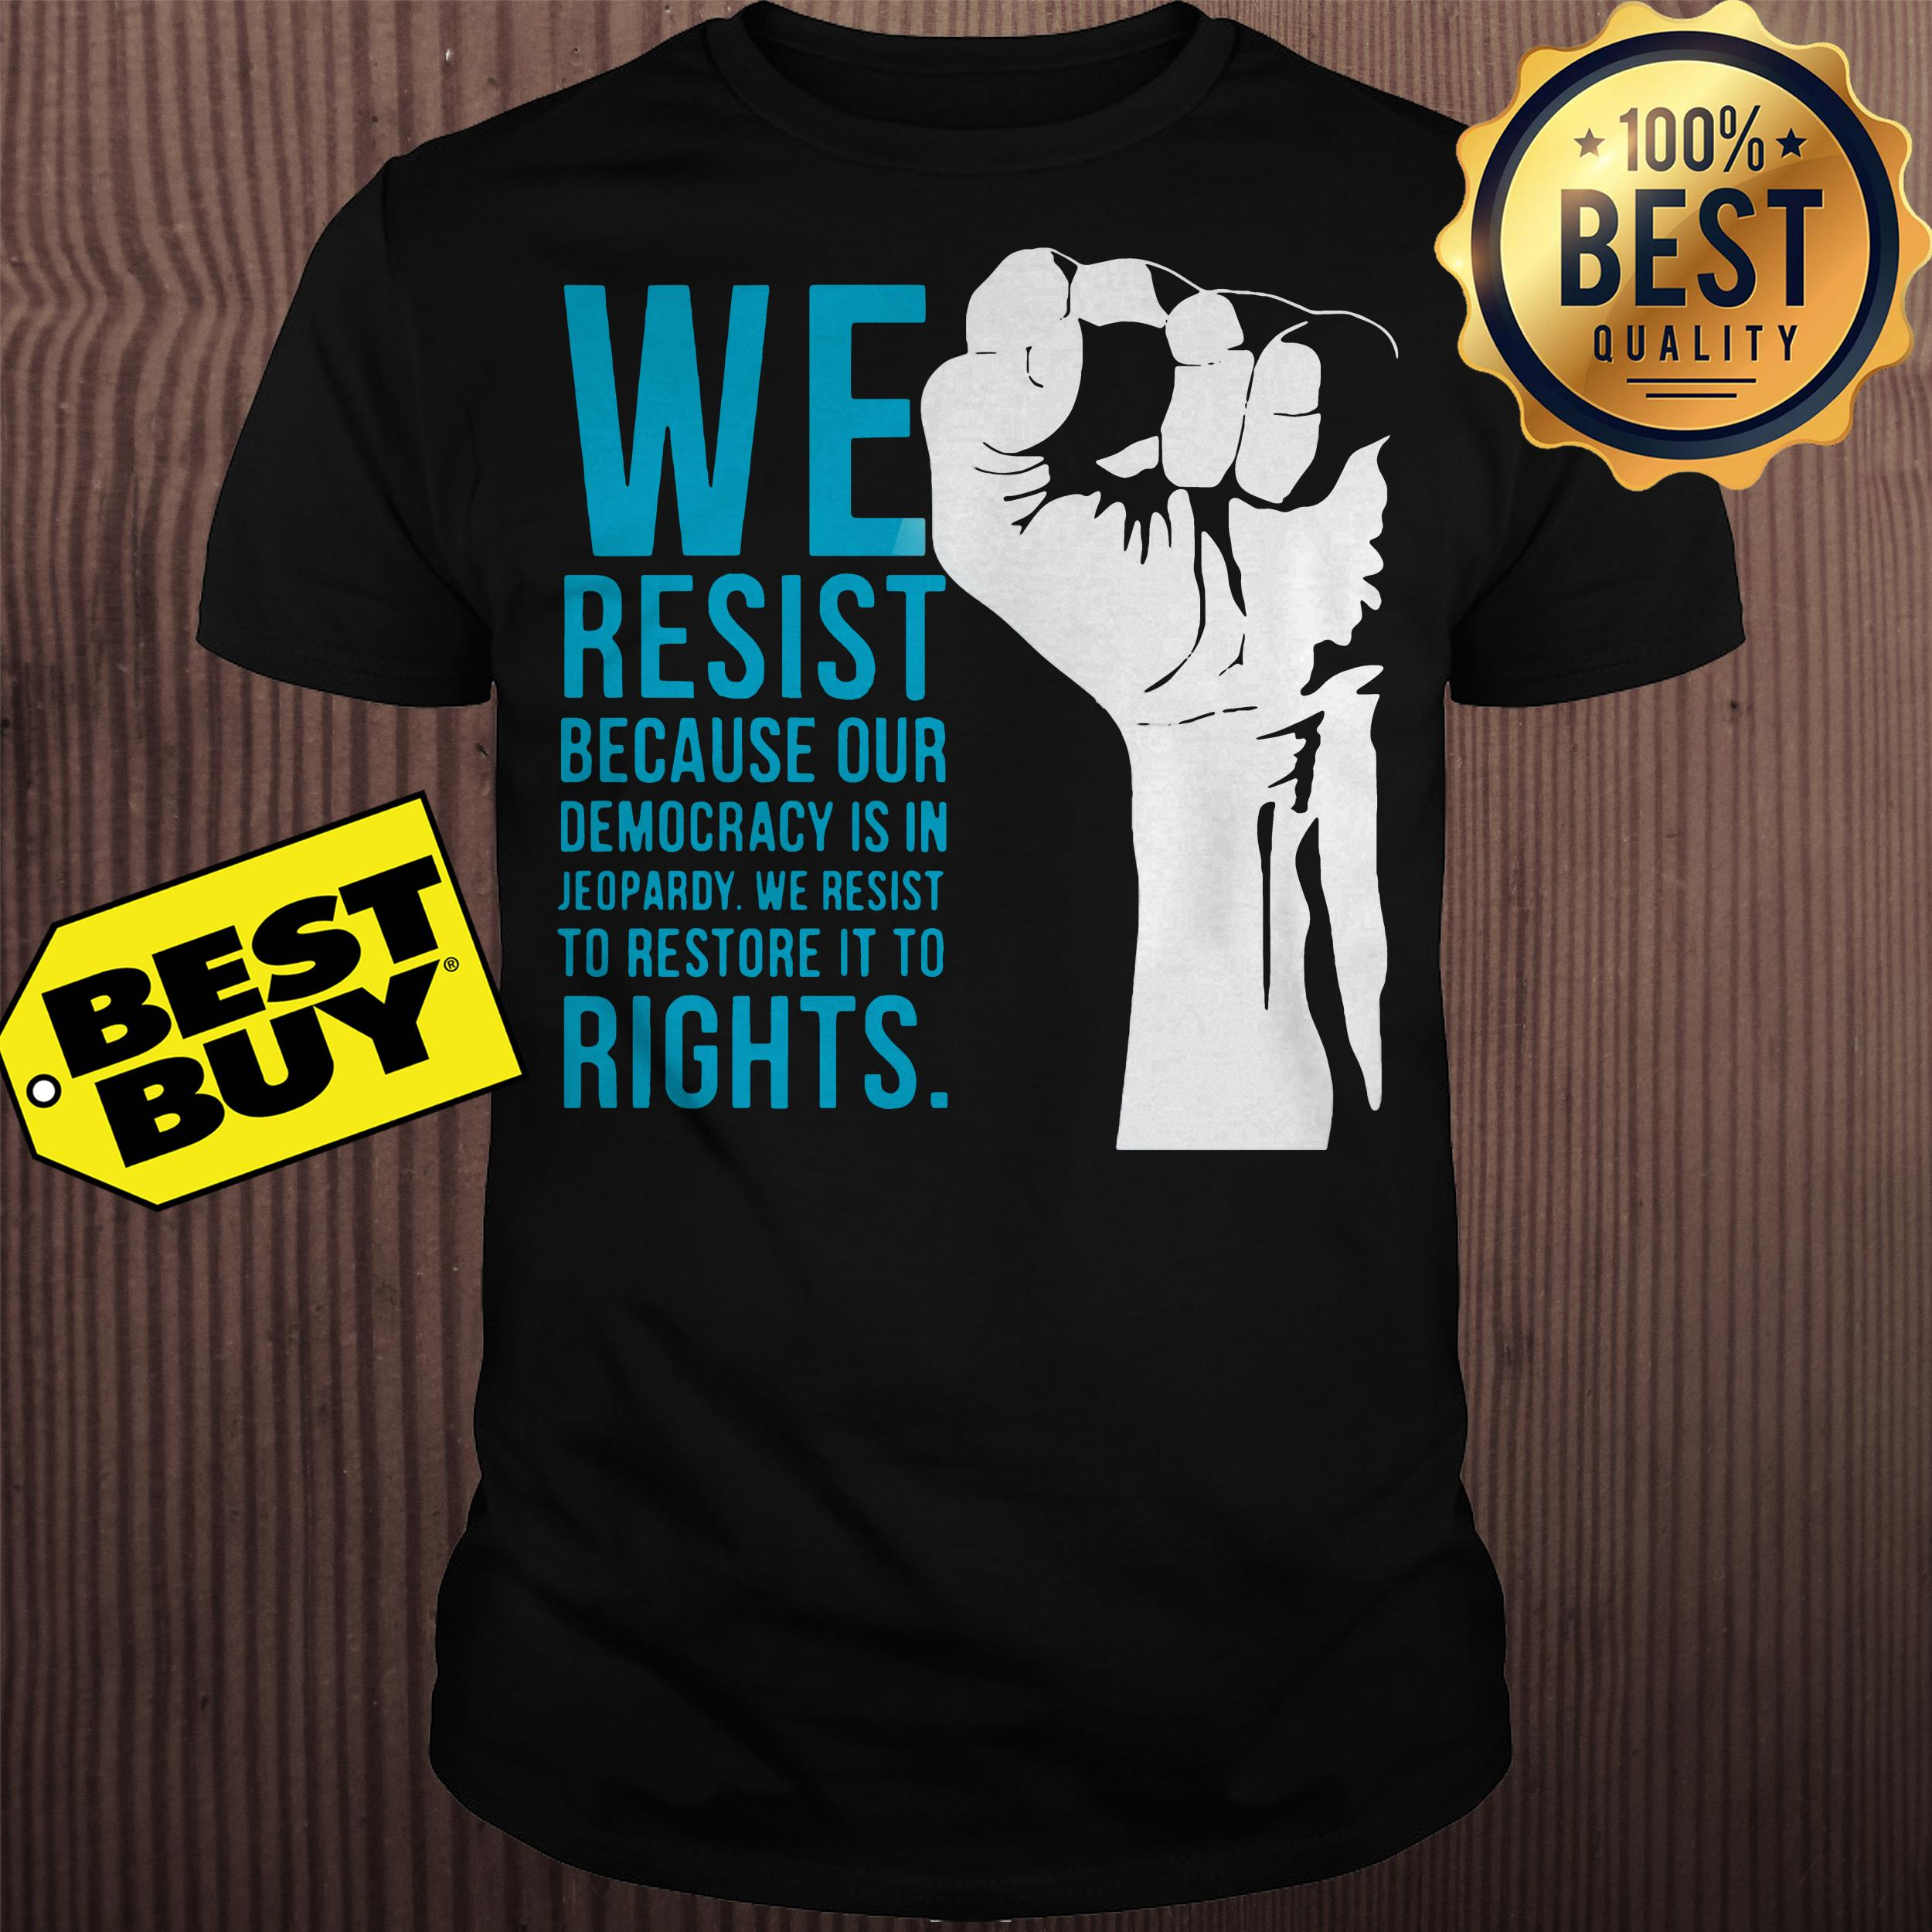 We resist because our democracy is in Jeopardy shirt